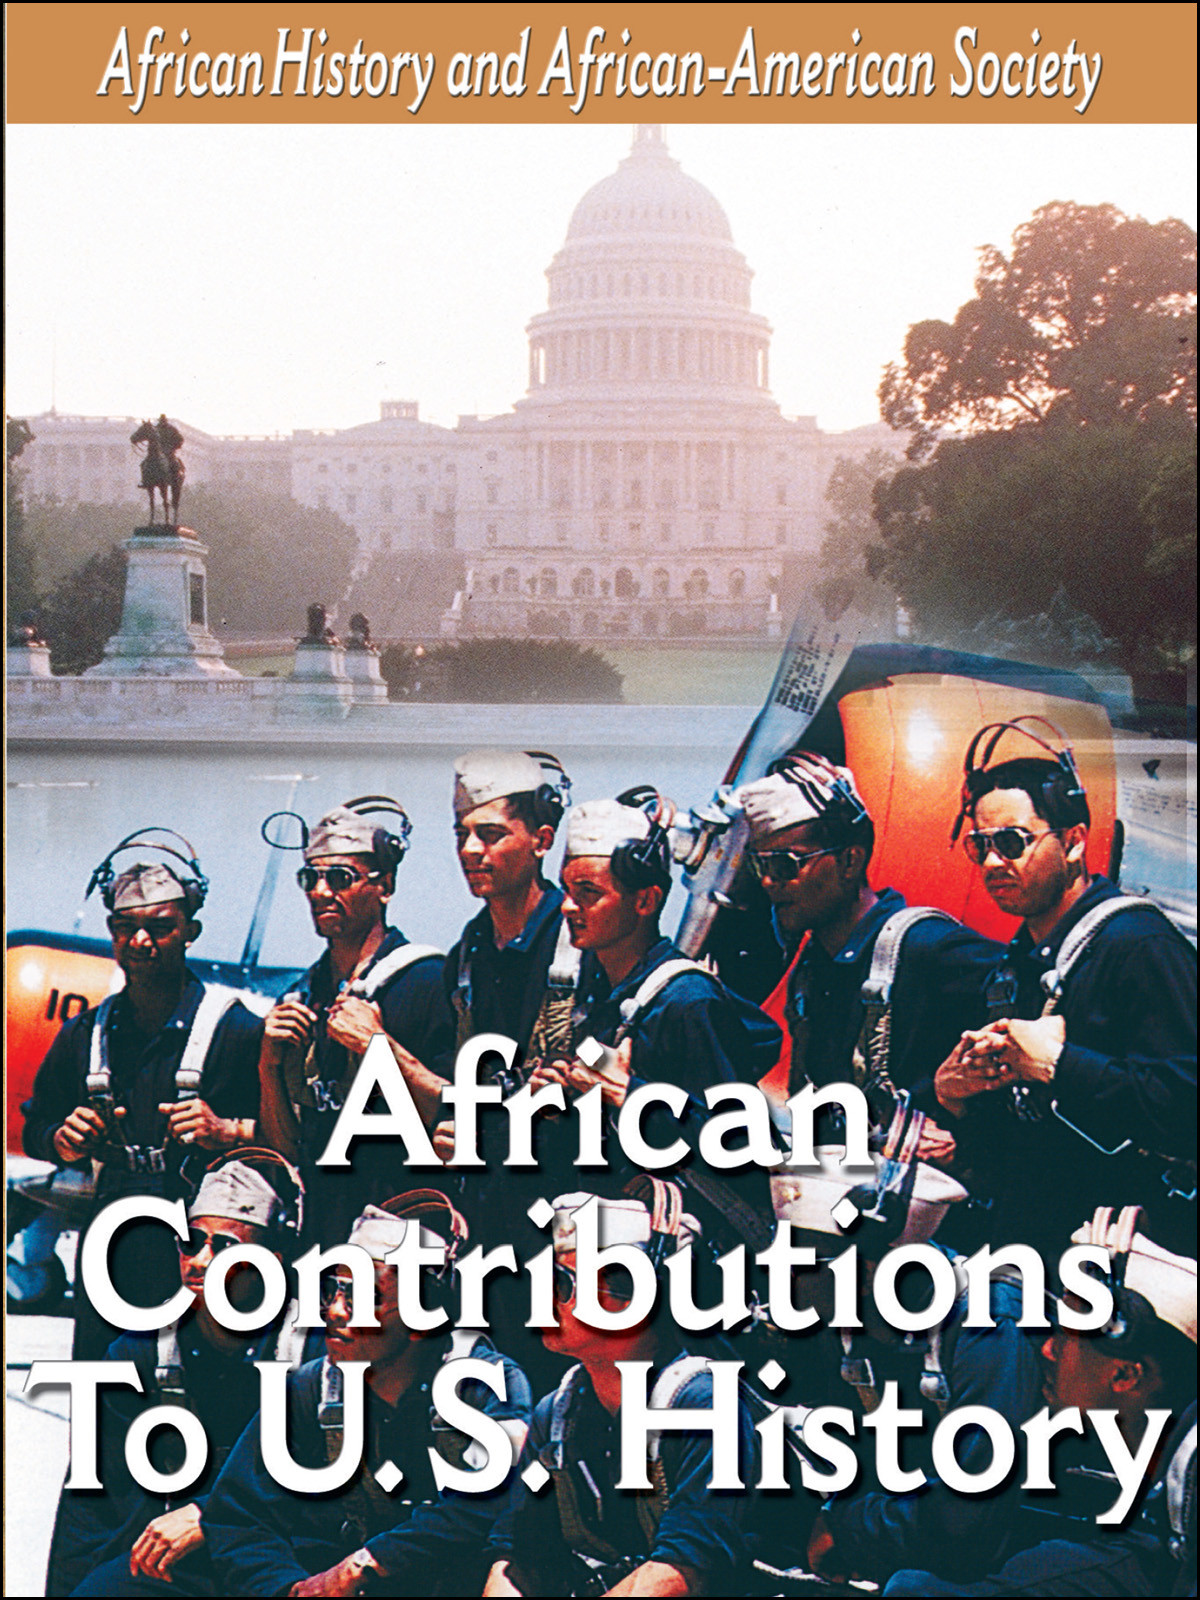 L904 - African-American History African Contributions To US History